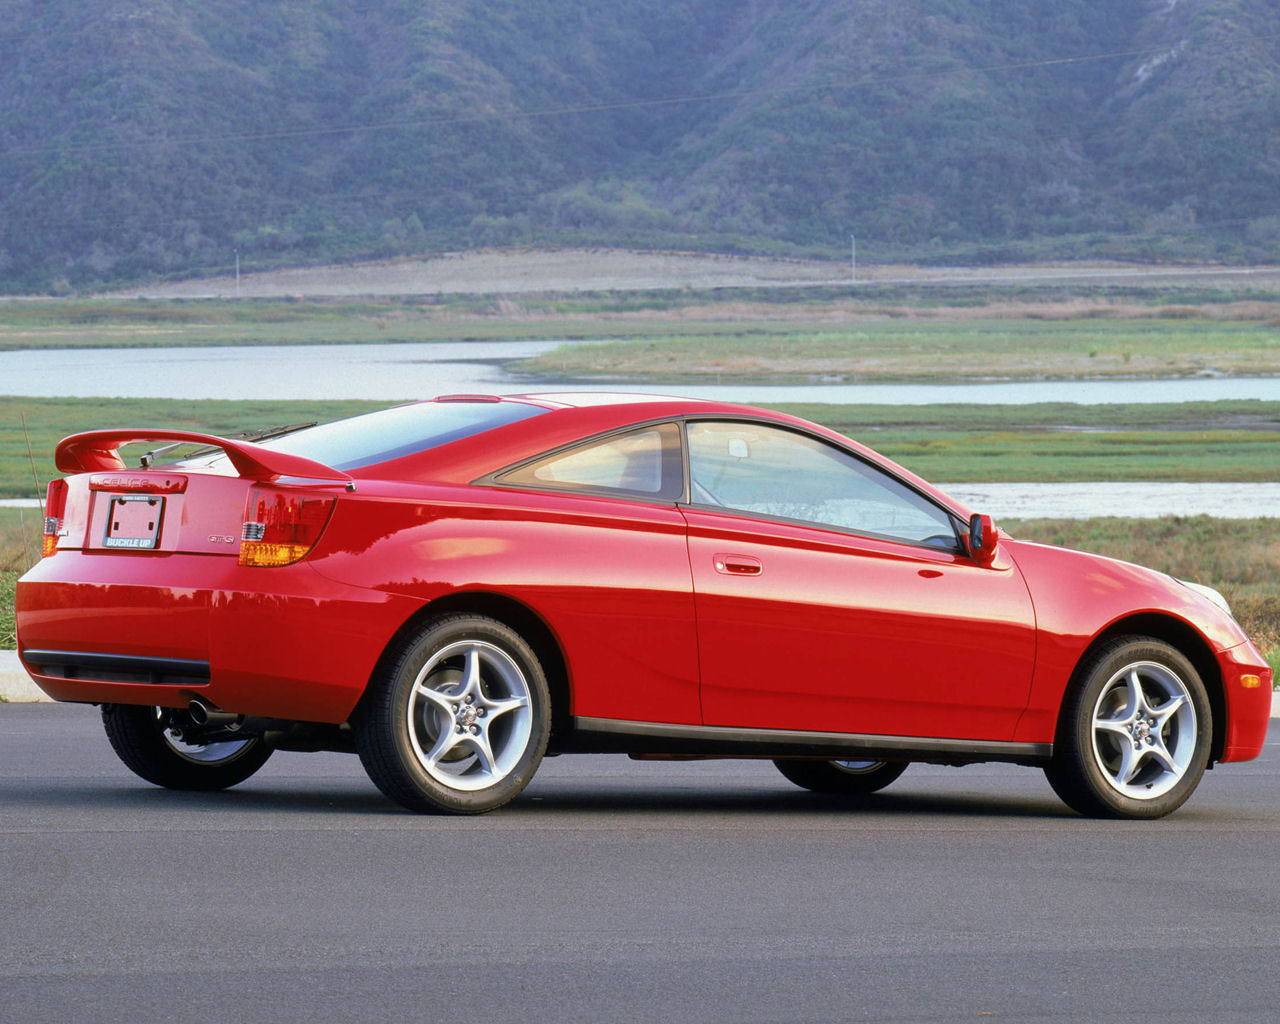 Toyota Celica Wallpaper 14627 Hd Wallpapers in Cars   Imagescicom 1280x1024